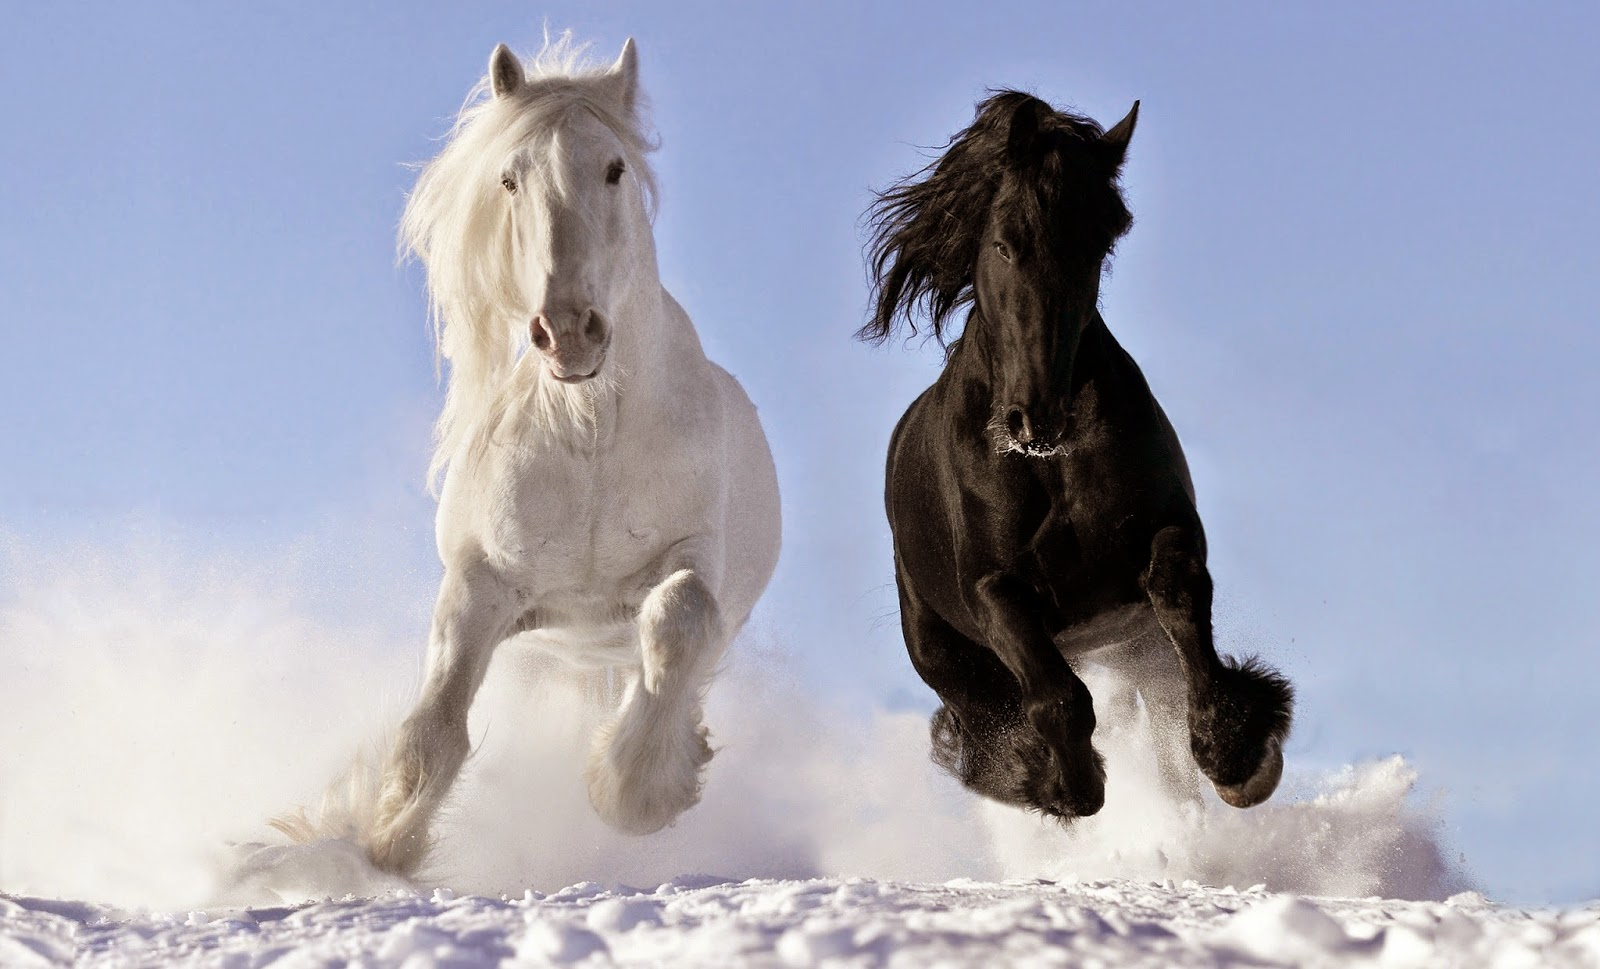 Fantastic   Wallpaper Horse Ultra Hd - wxp%2B(8)  Trends_6610082.jpg